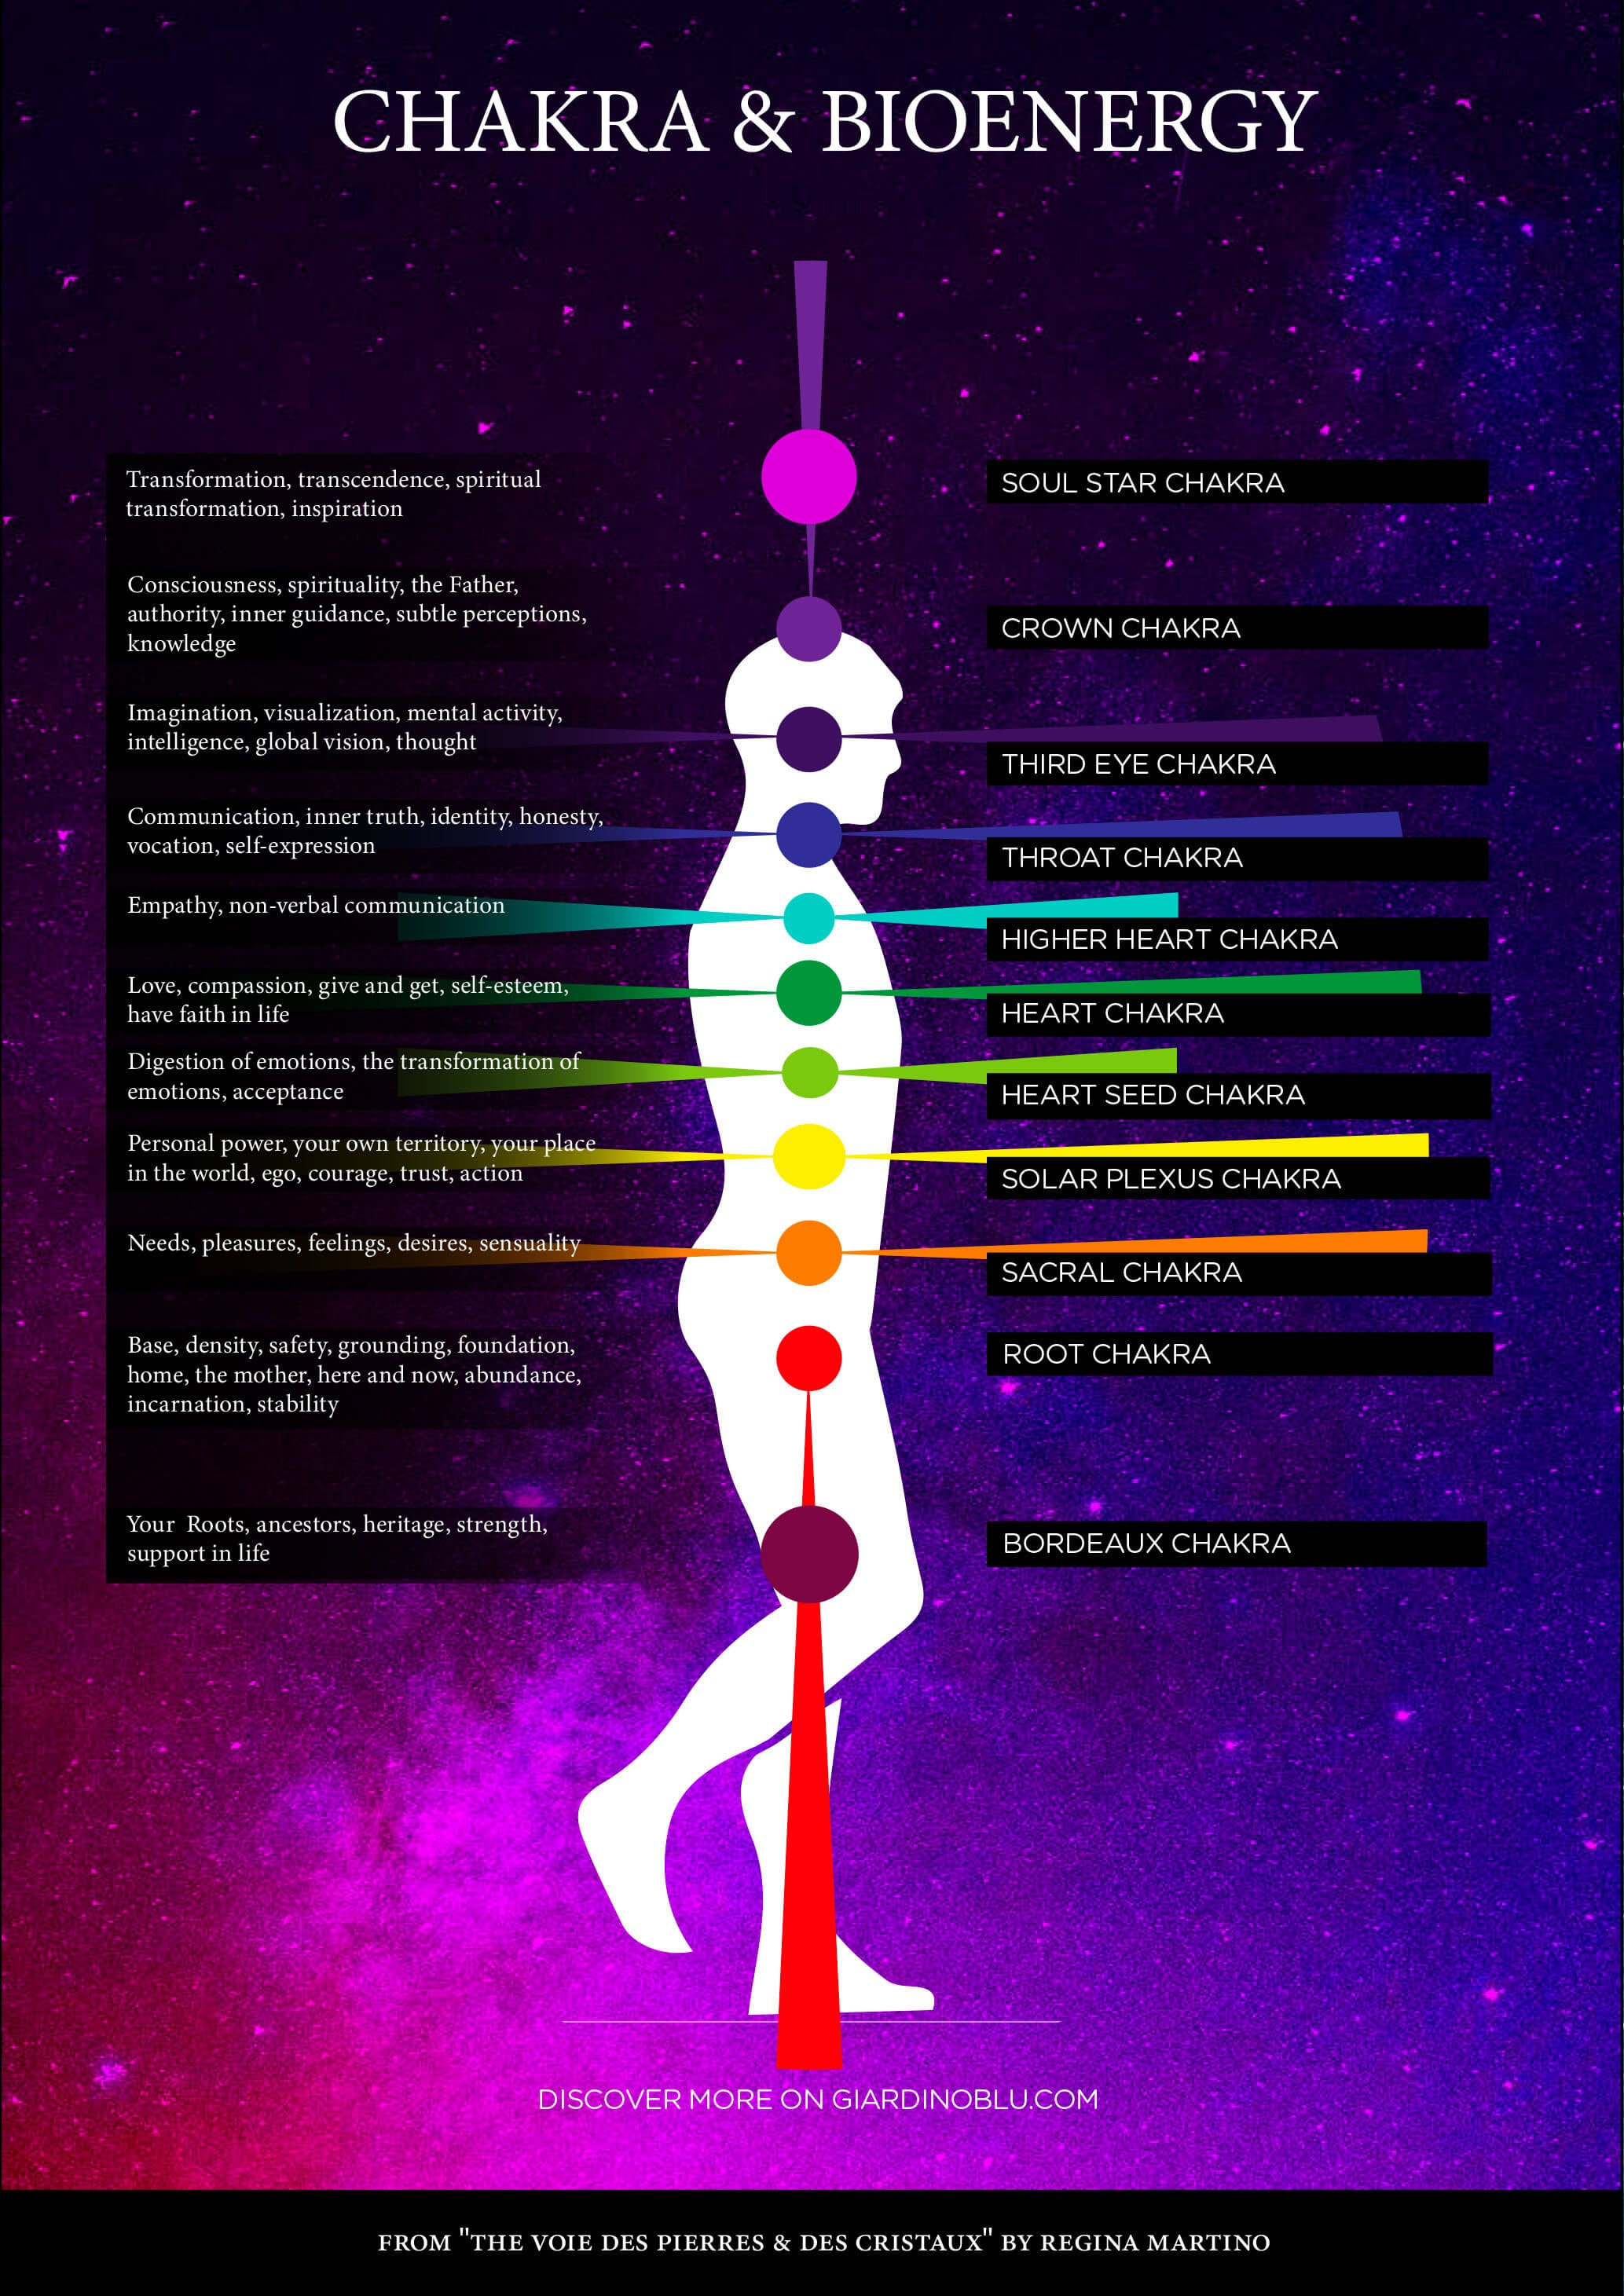 Chakras and Bioenergy diagram